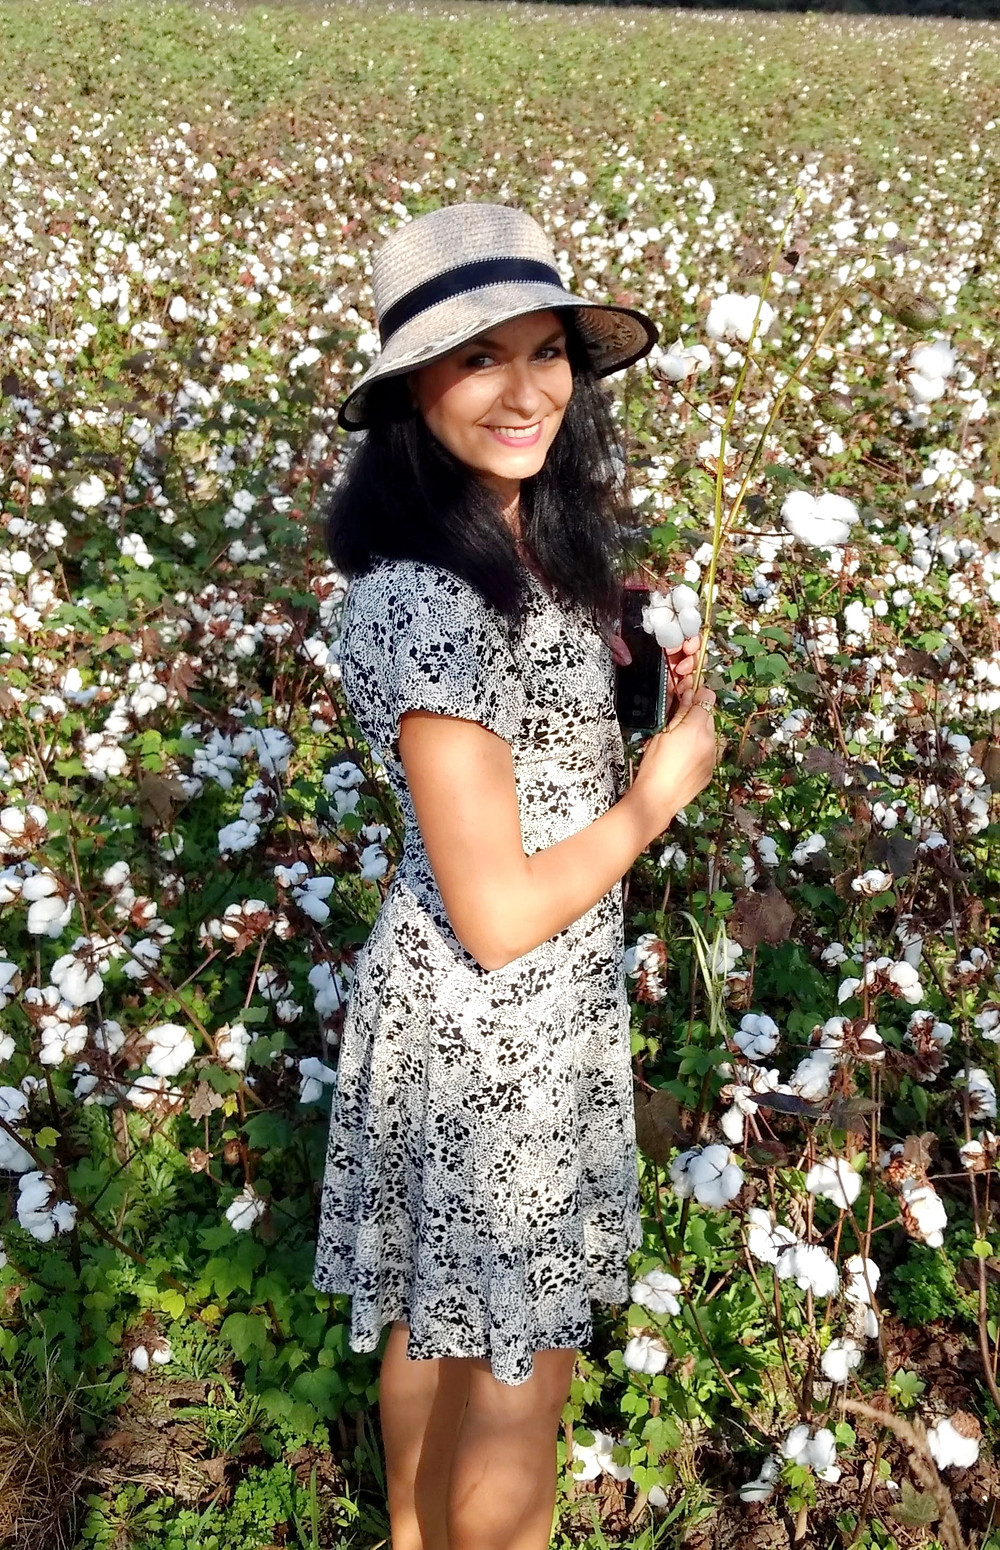 Woman in a hat and sundress standing in front of a cotton field